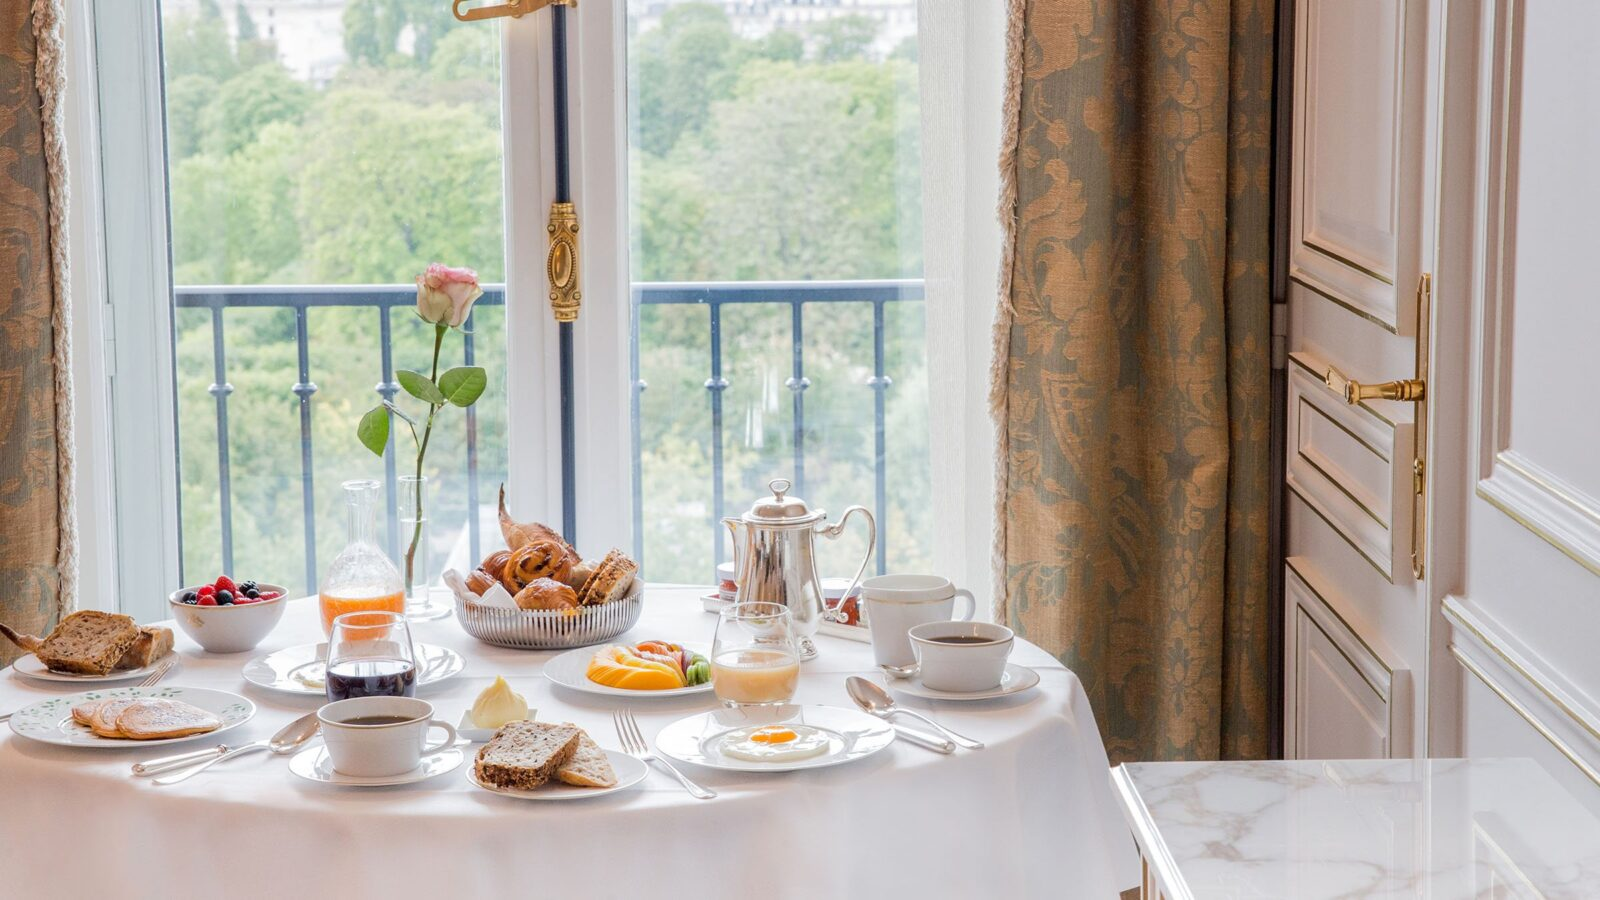 Breakfast at Le Meurice, Paris